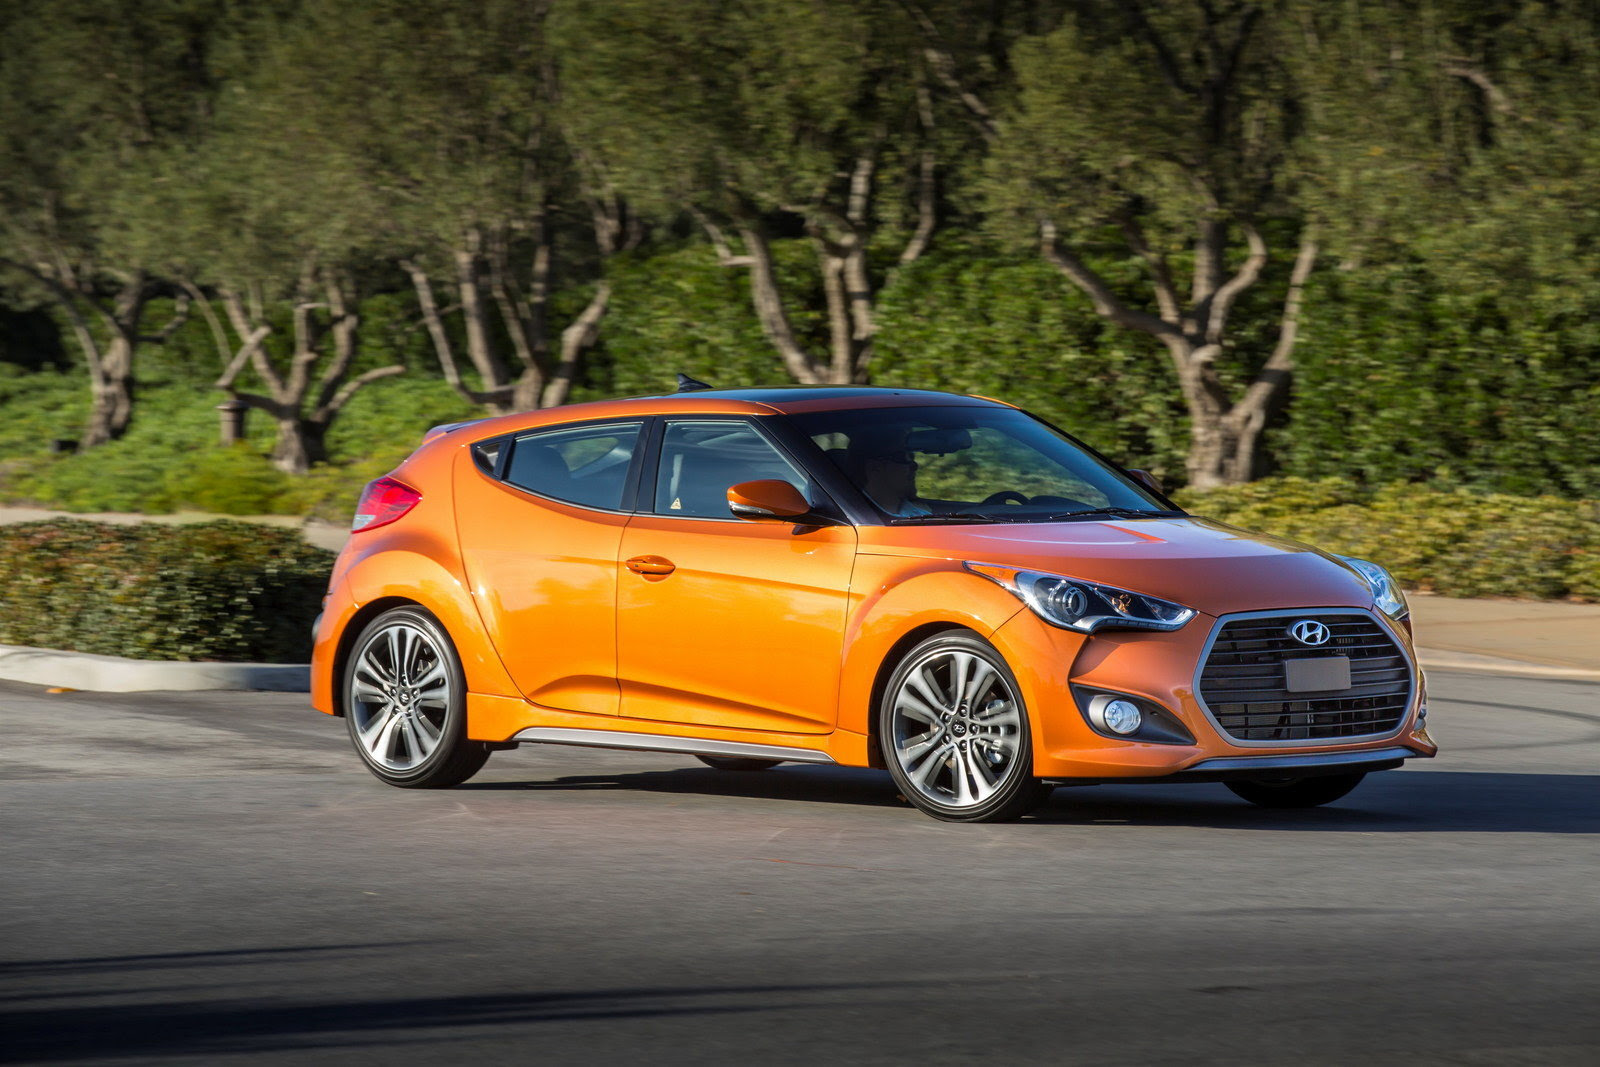 2016 Hyundai Veloster Turbo - Picture 617094   car review ...